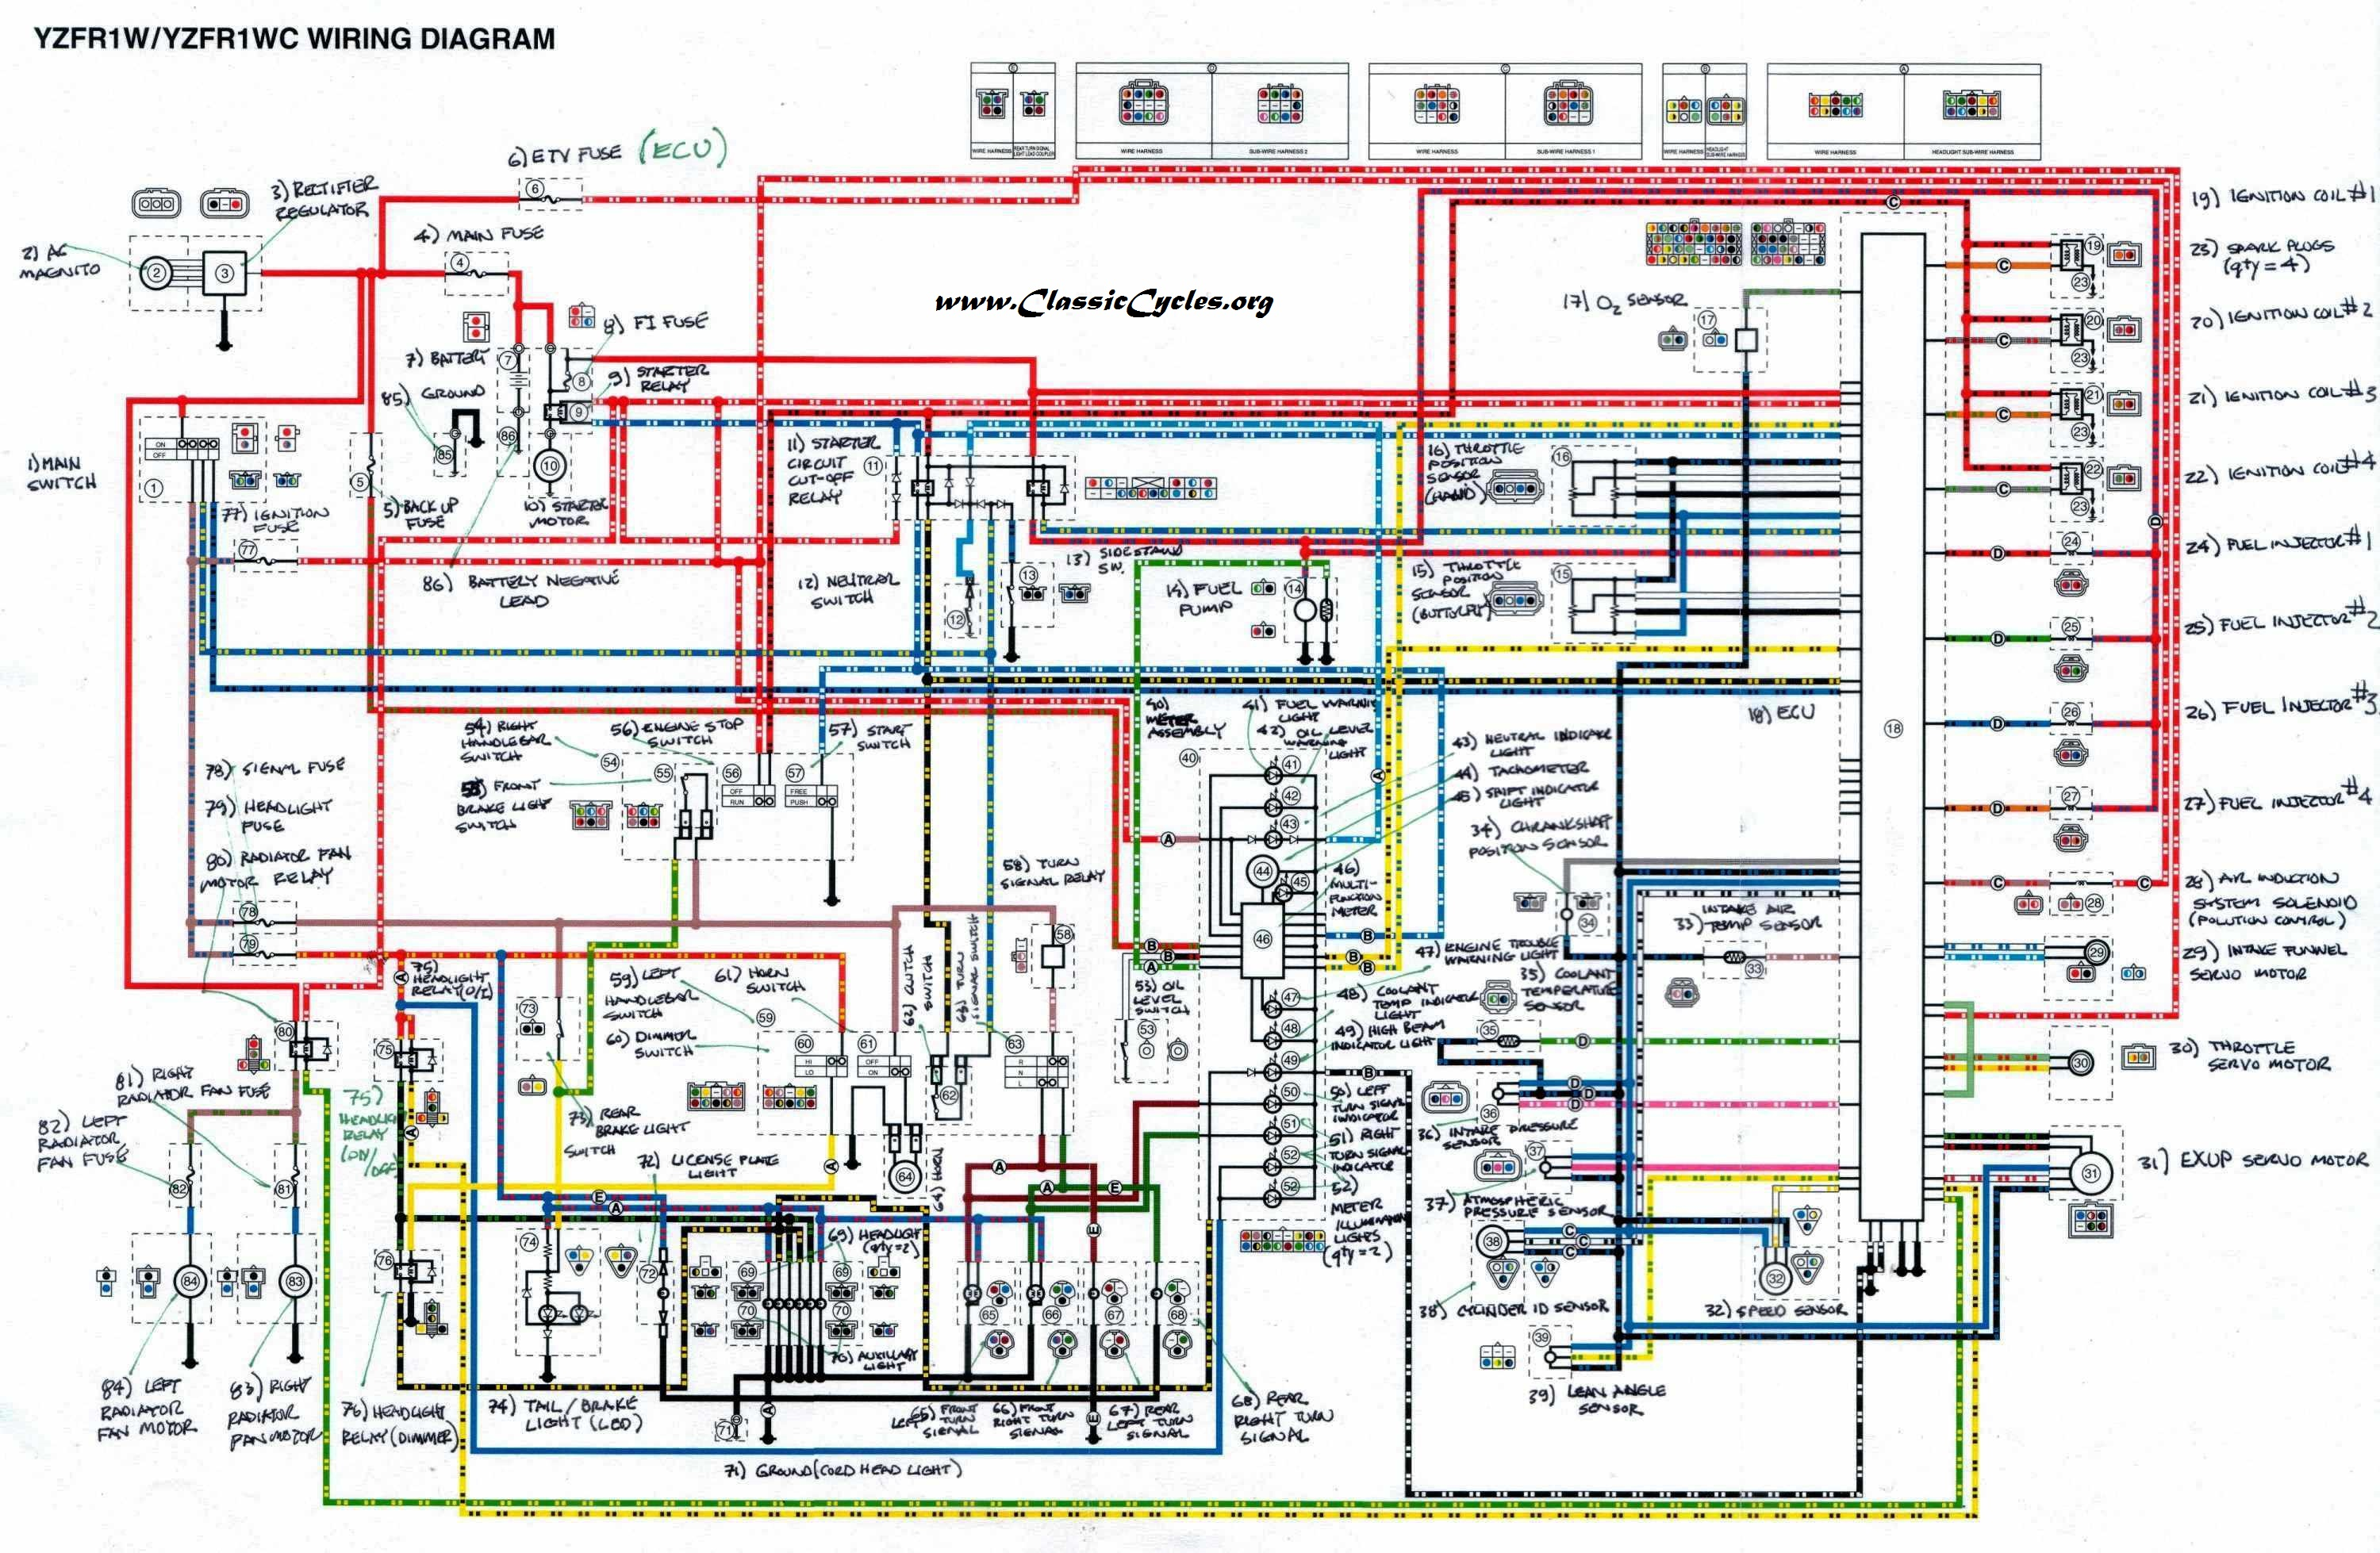 yamaha gx 80 1976 moto yamaha xs 1100 wiring diagram wiring diagram simonand 1978 yamaha xs650 wiring diagram at virtualis.co